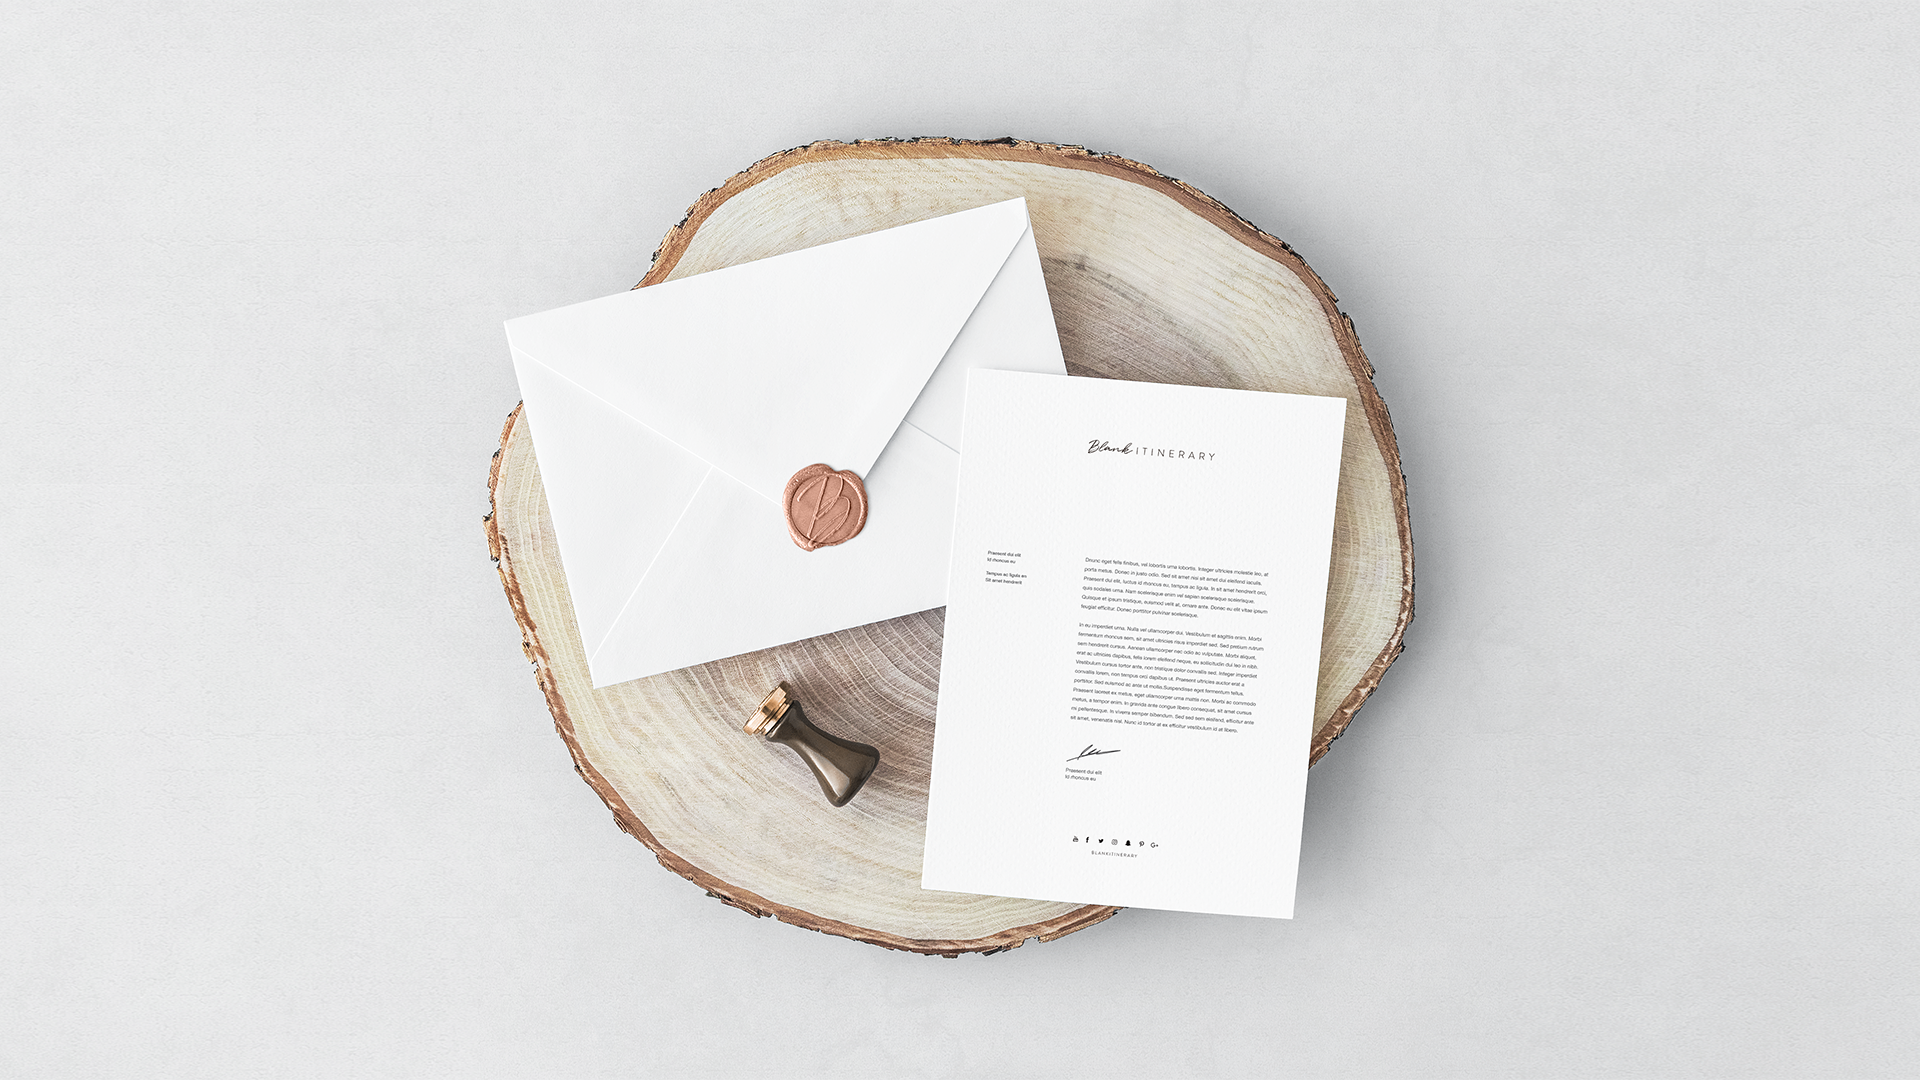 Invitation-Card-&-Envelope-blank-itinerary-yoenpaperland